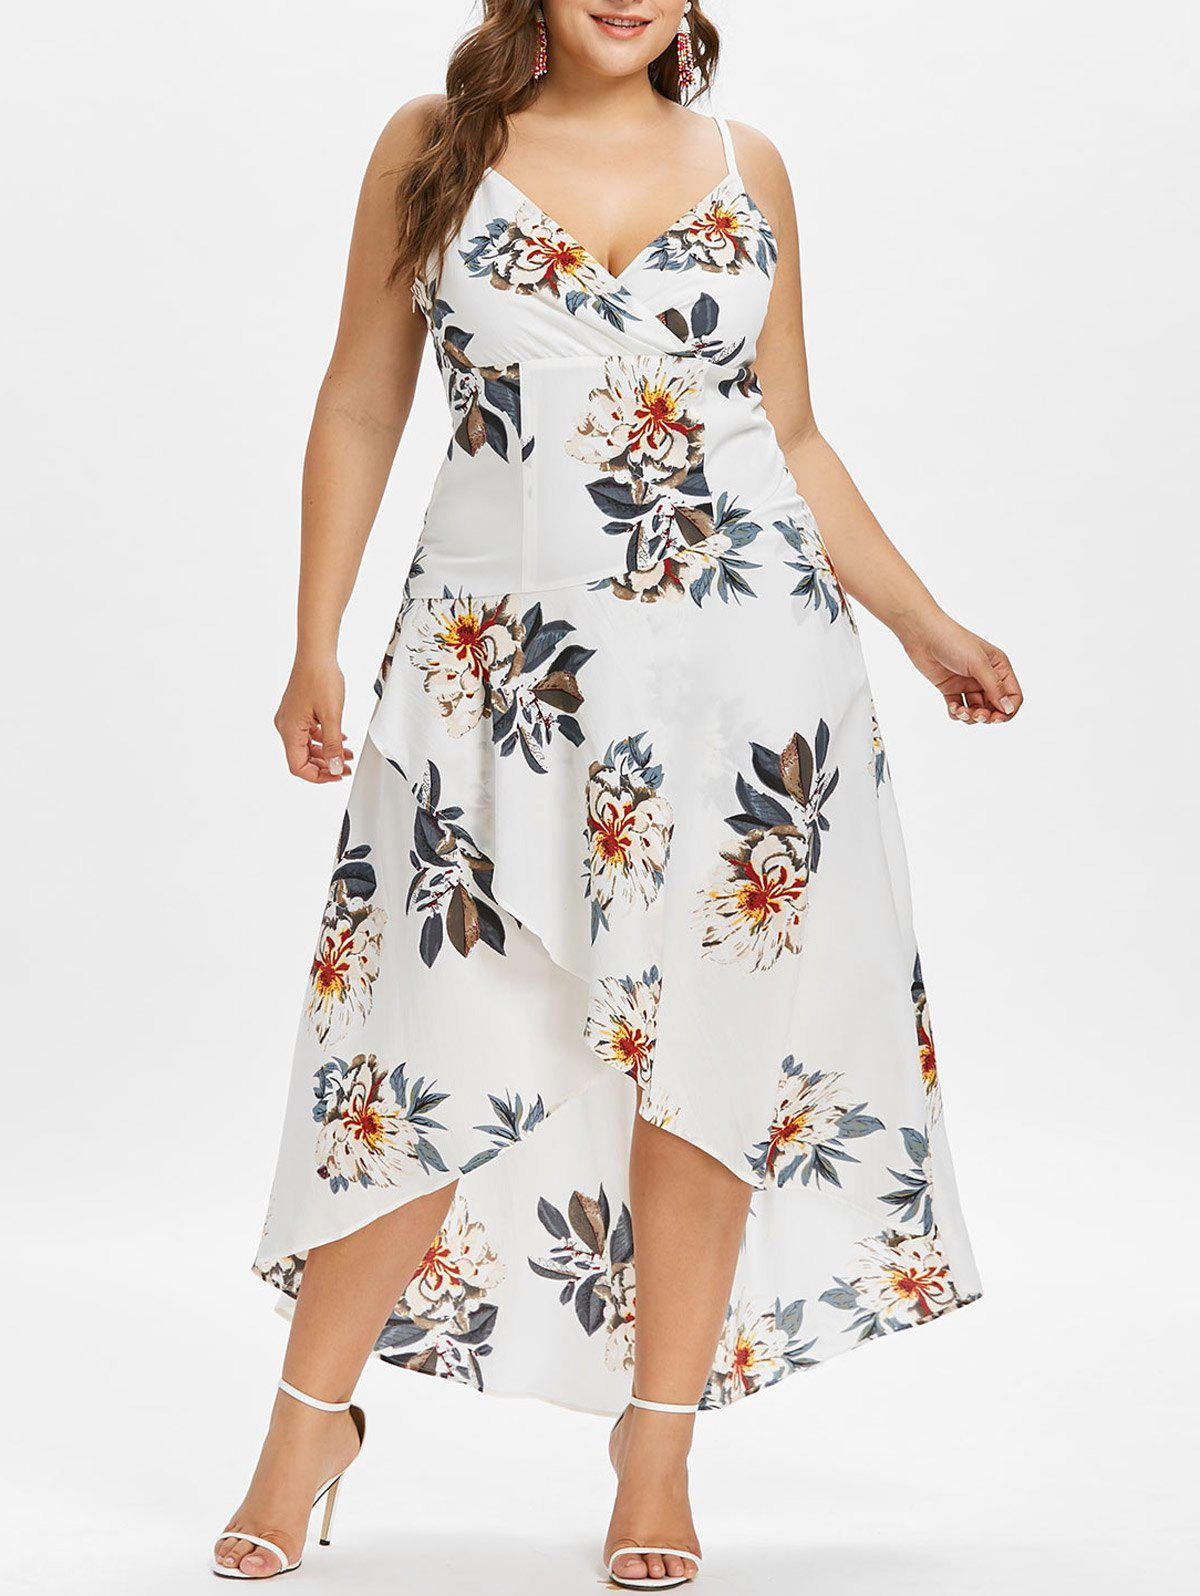 Plus Size Floral Maxi Slip Dress tiny floral chiffon plus size slip handkerchief dress